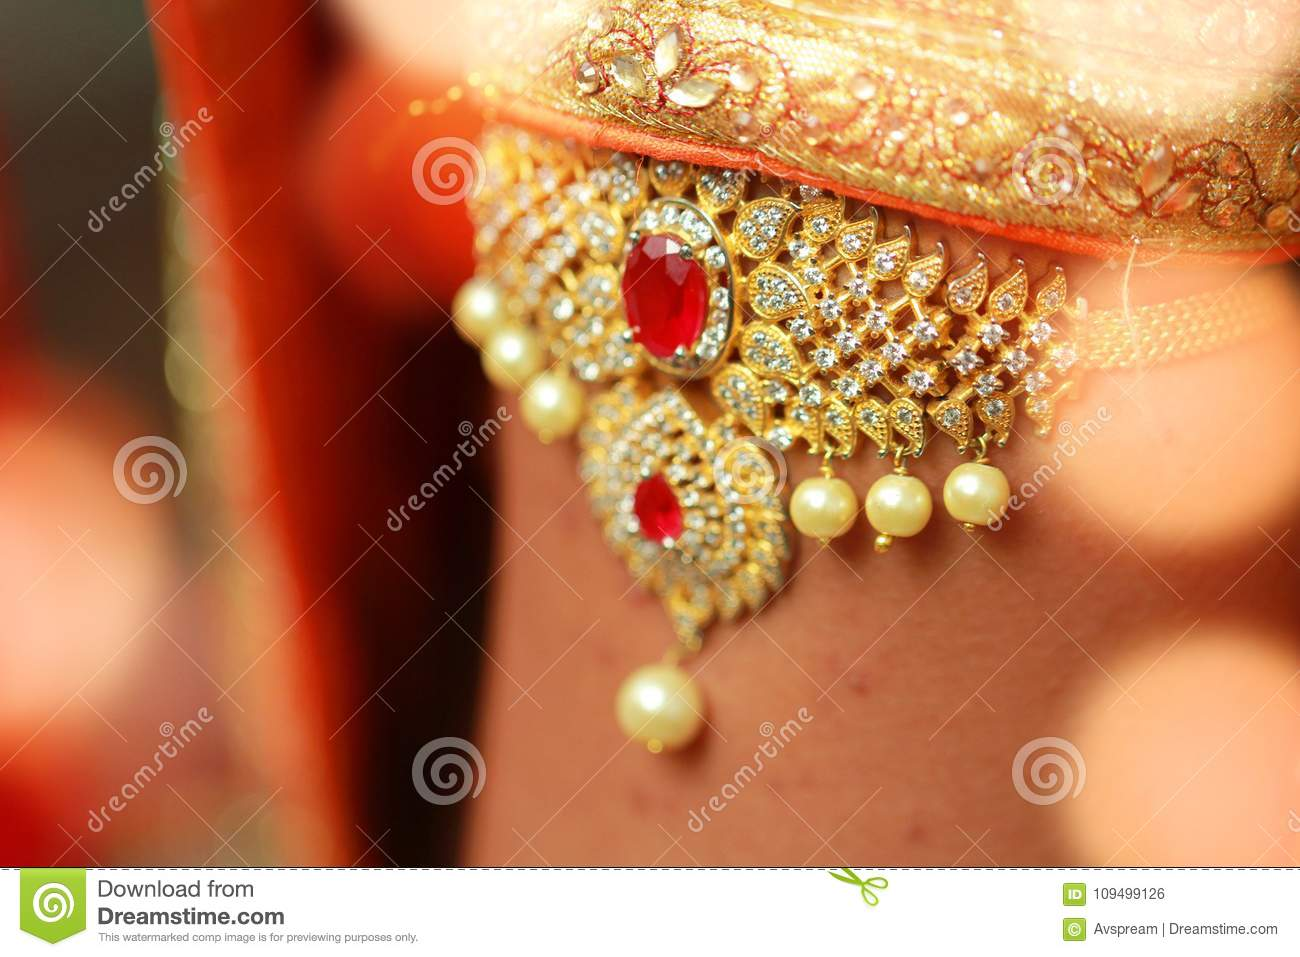 Bridal Dress And Hand Of Bride Indian Wedding Preparation Luxury Oriental Fashion Beauty Accessories